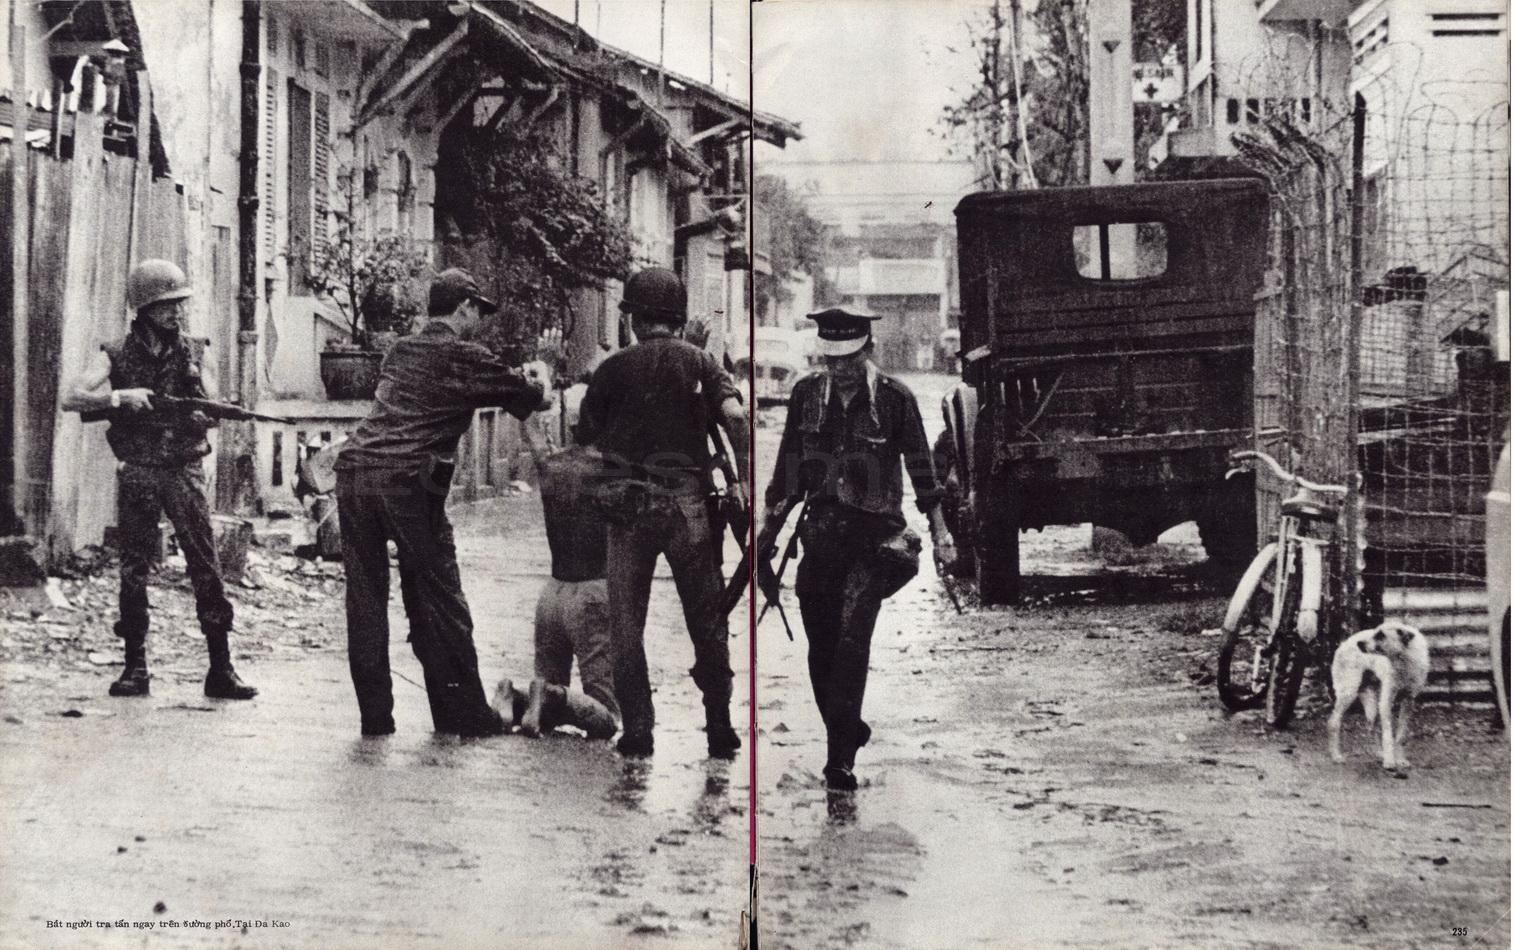 history of tet offensive Tet offensive four-star general vo nguyen giap led vietnam's armies from their inception, in the 1940s, up to the moment of their triumphant entrance into saigon in 1975.